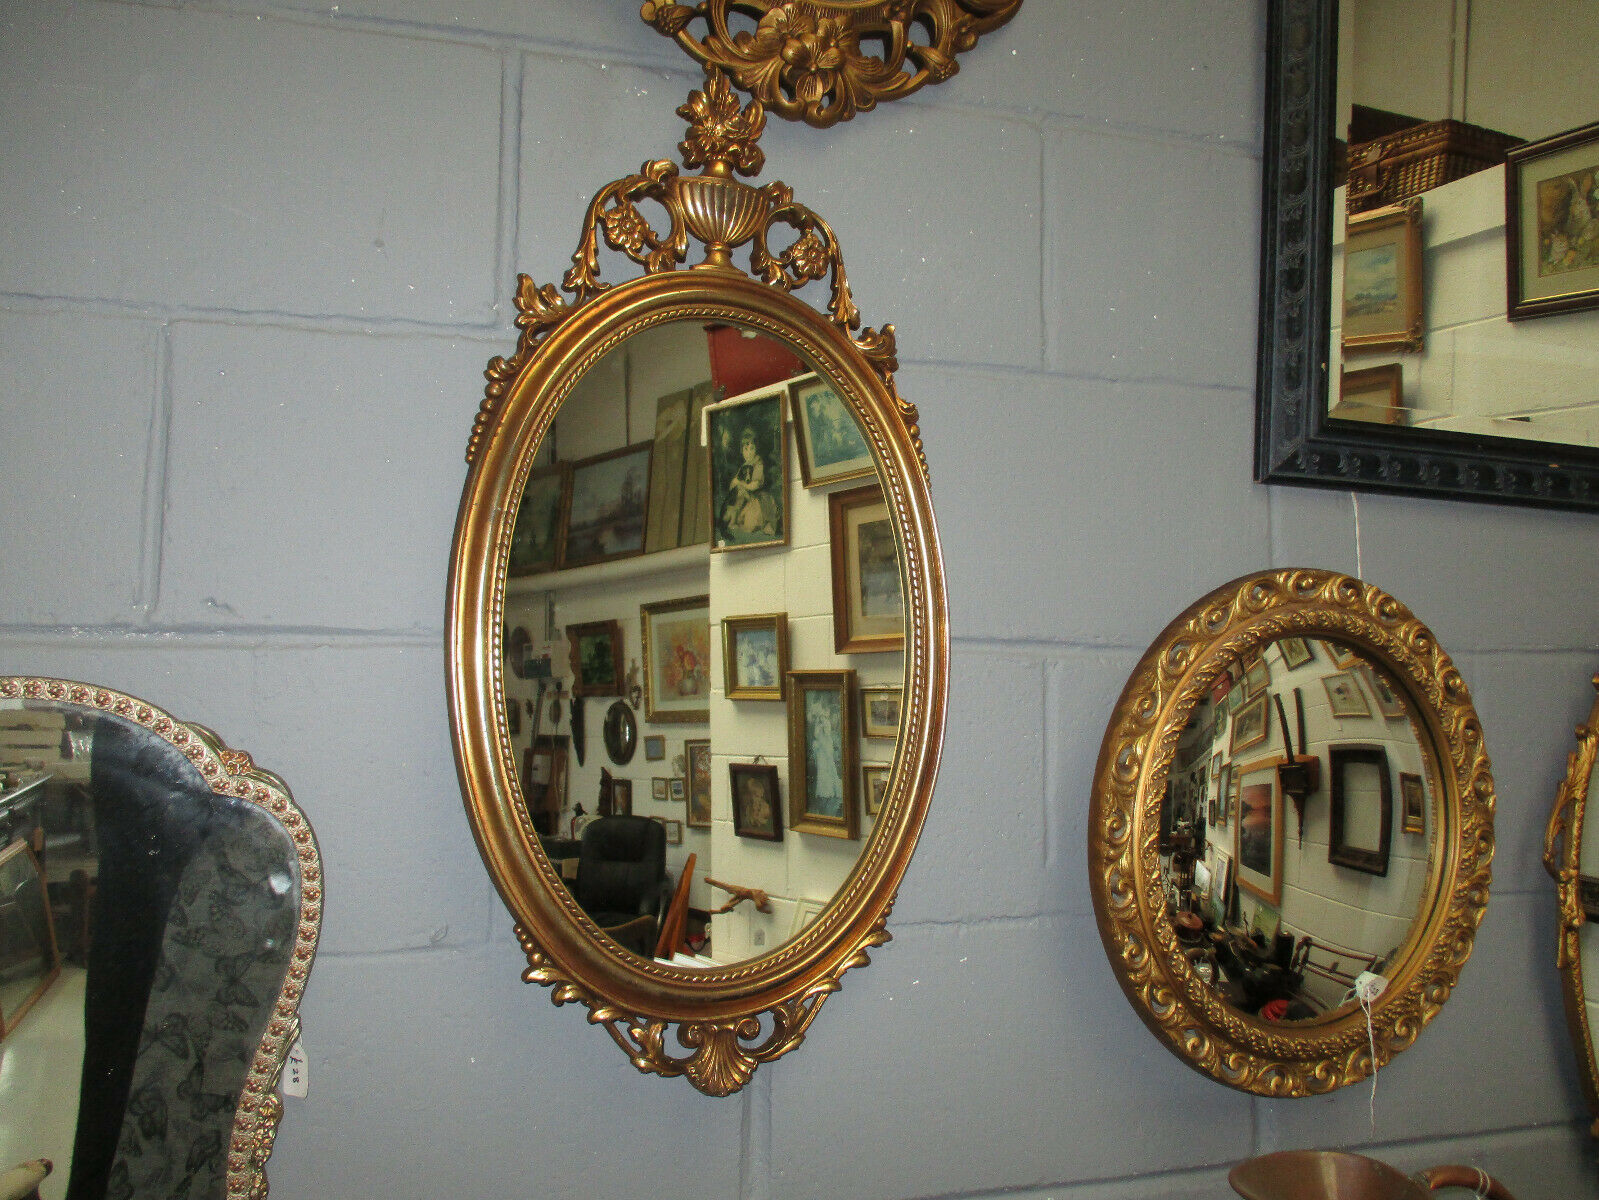 Decorative Guilt Mirror with Detailing